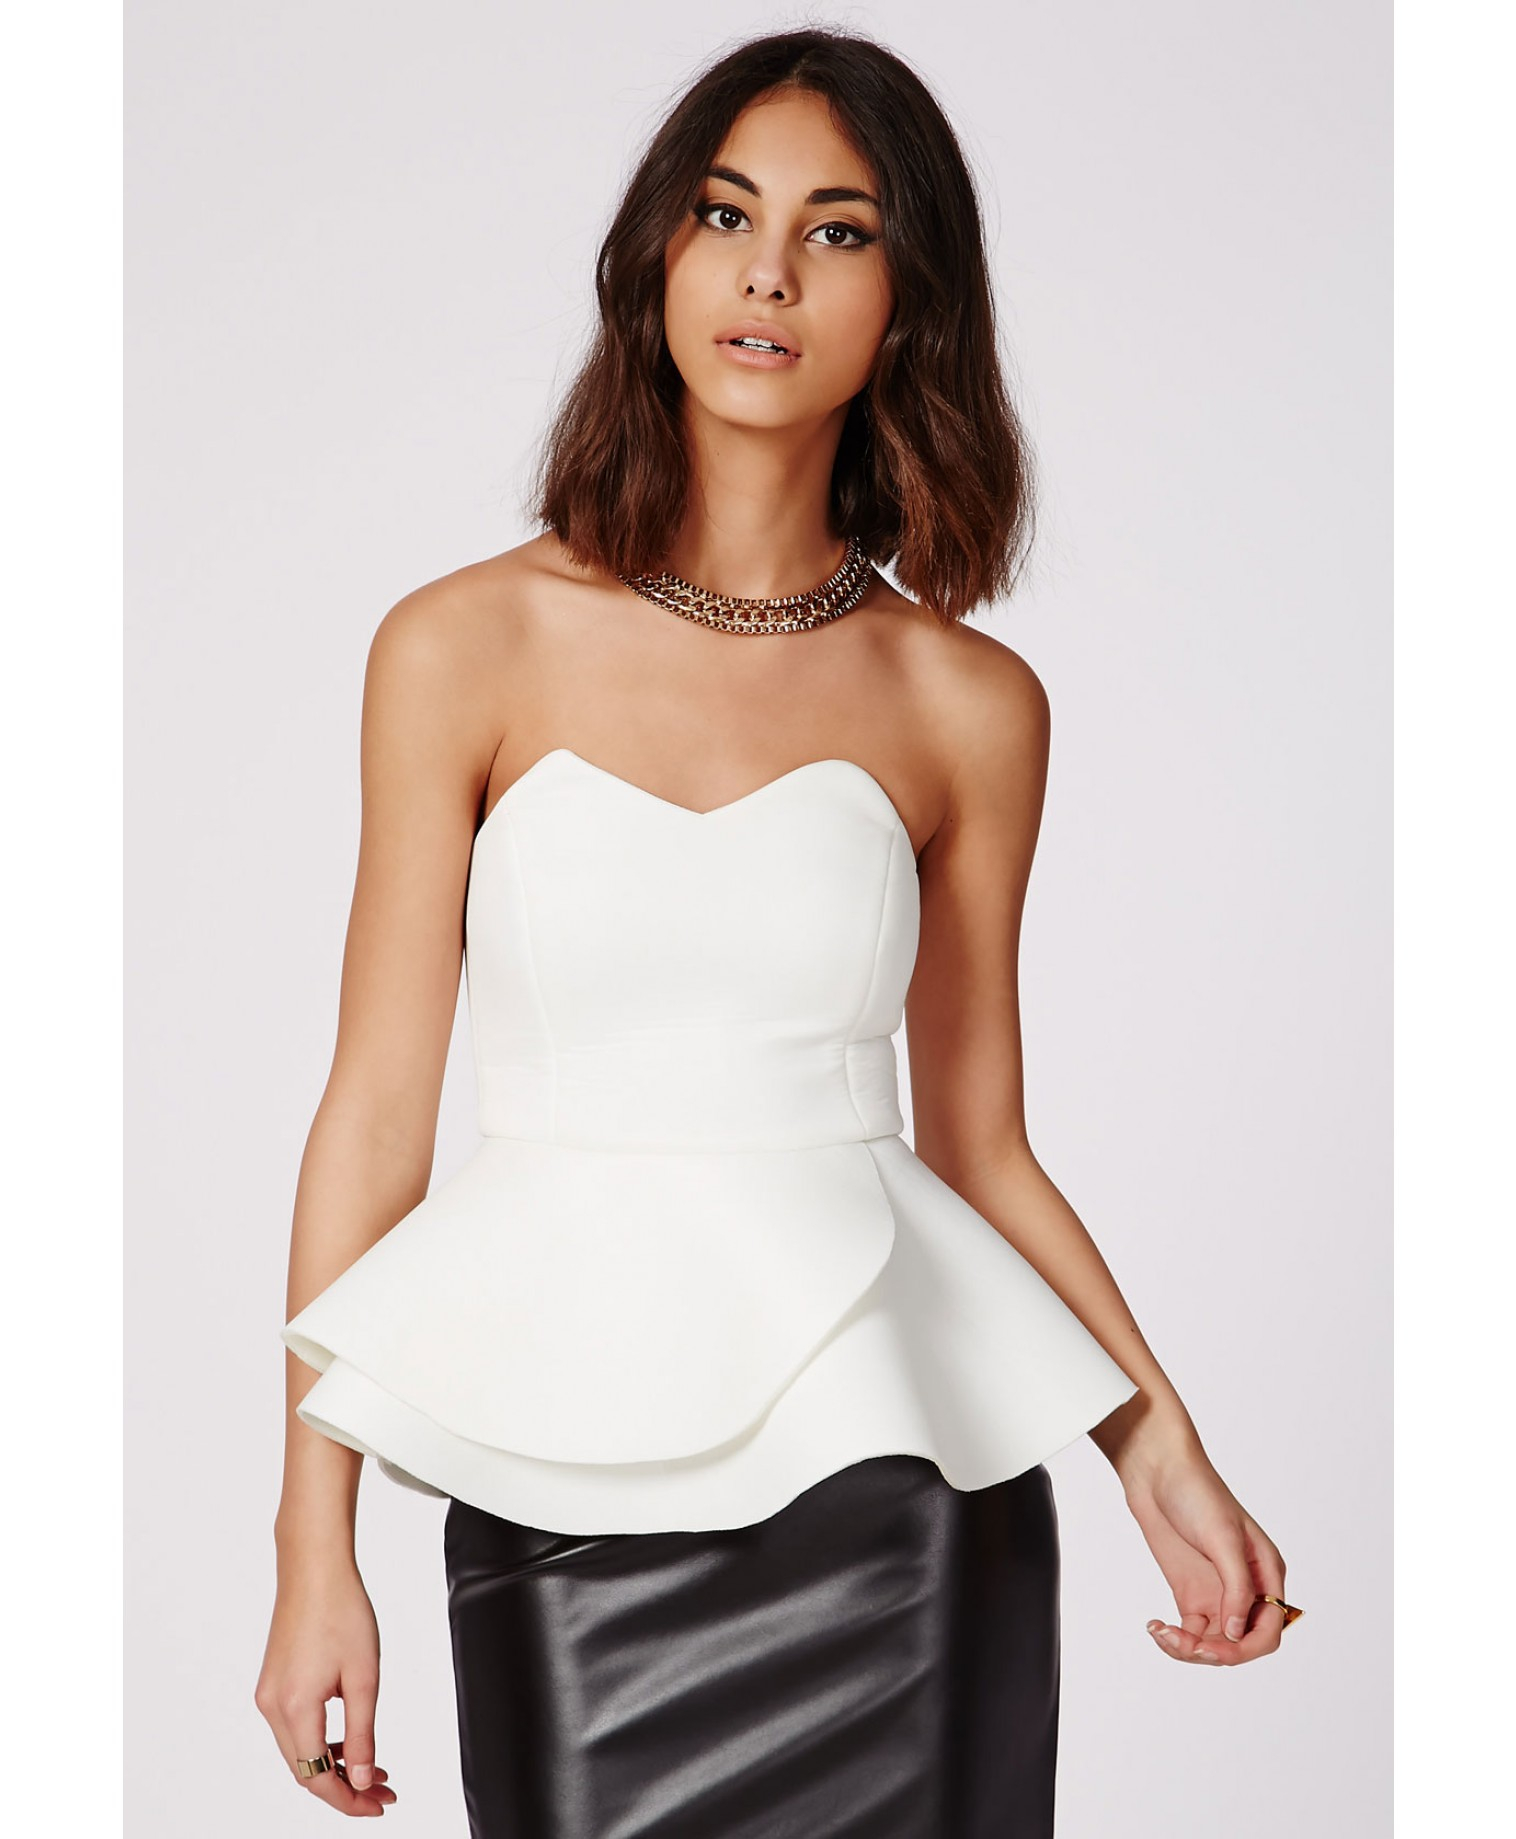 Strapless Peplum Dress